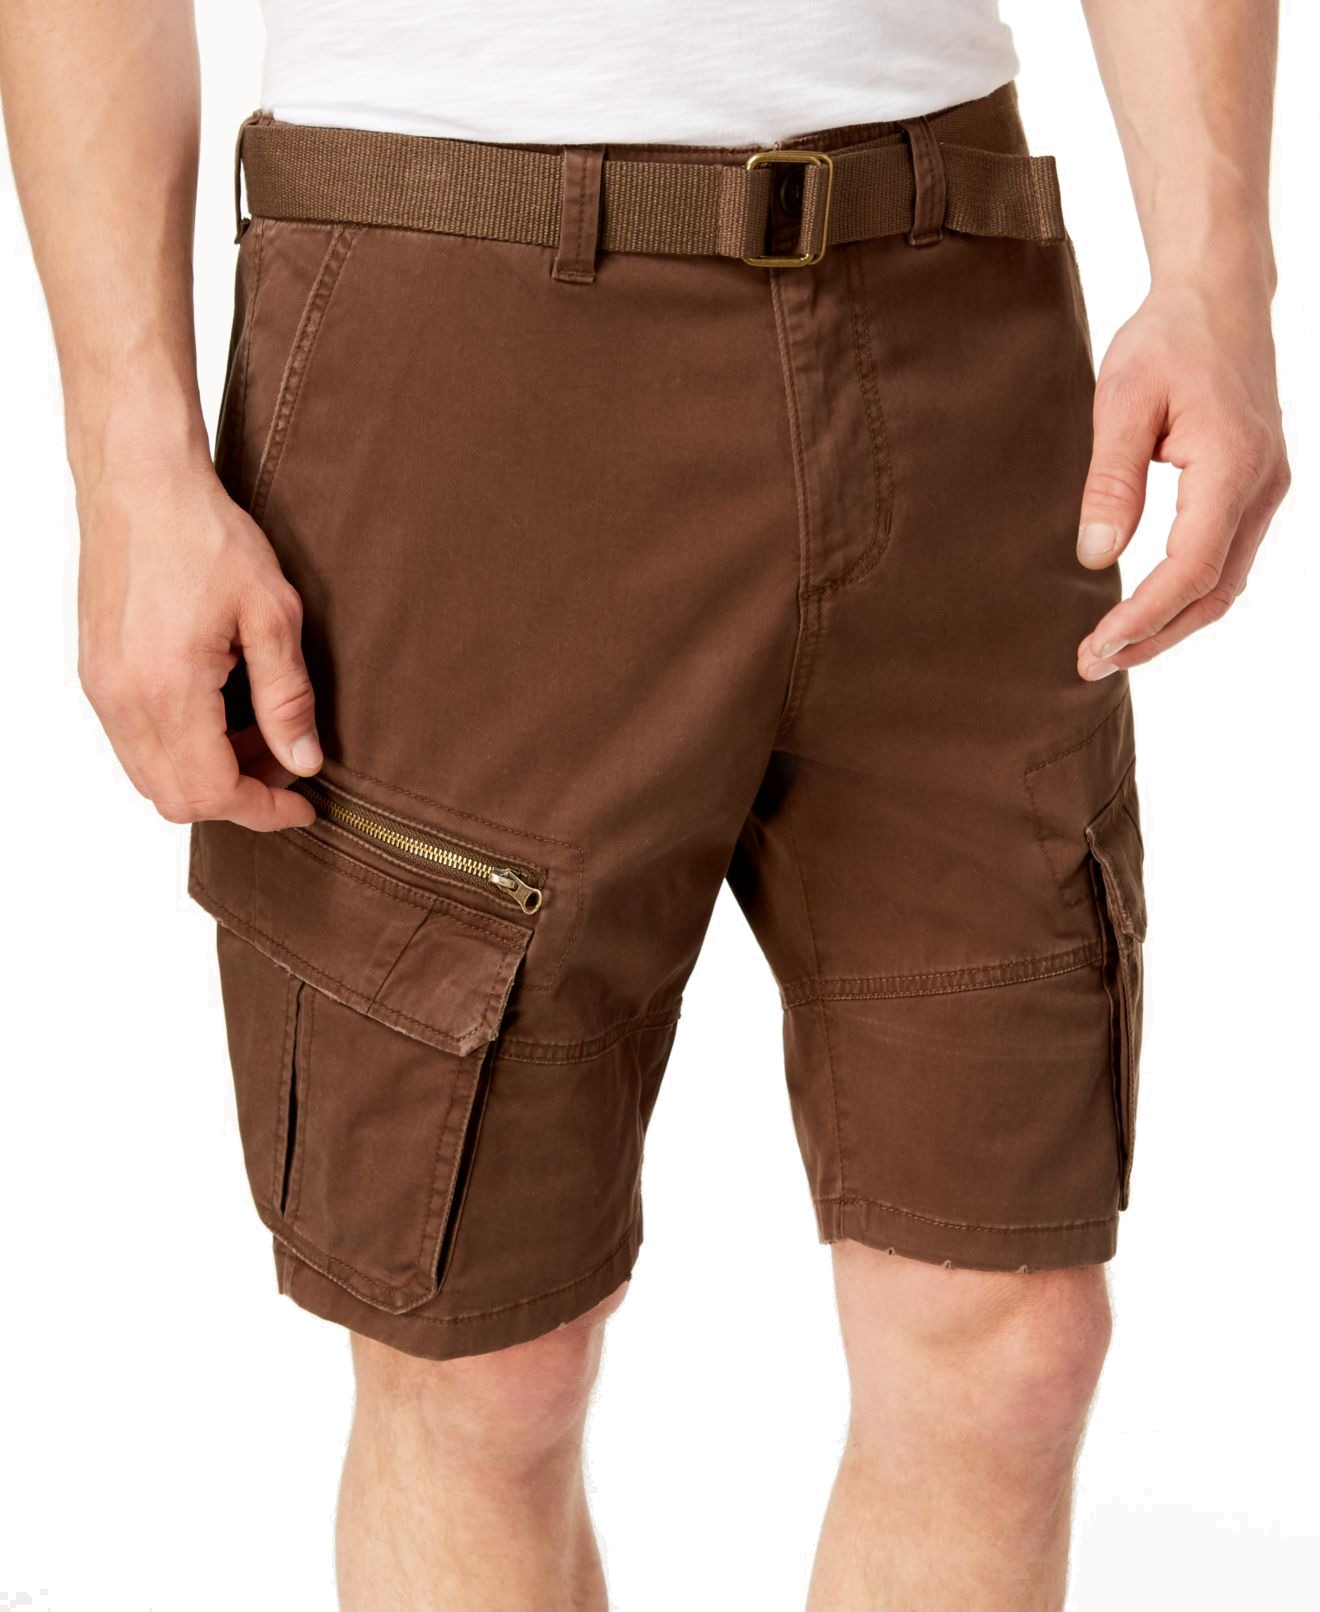 New-American-Rag-Mens-Brown-Bear-Size-29-Relaxed-Fit-Belted-Cargo-Shorts-40-429